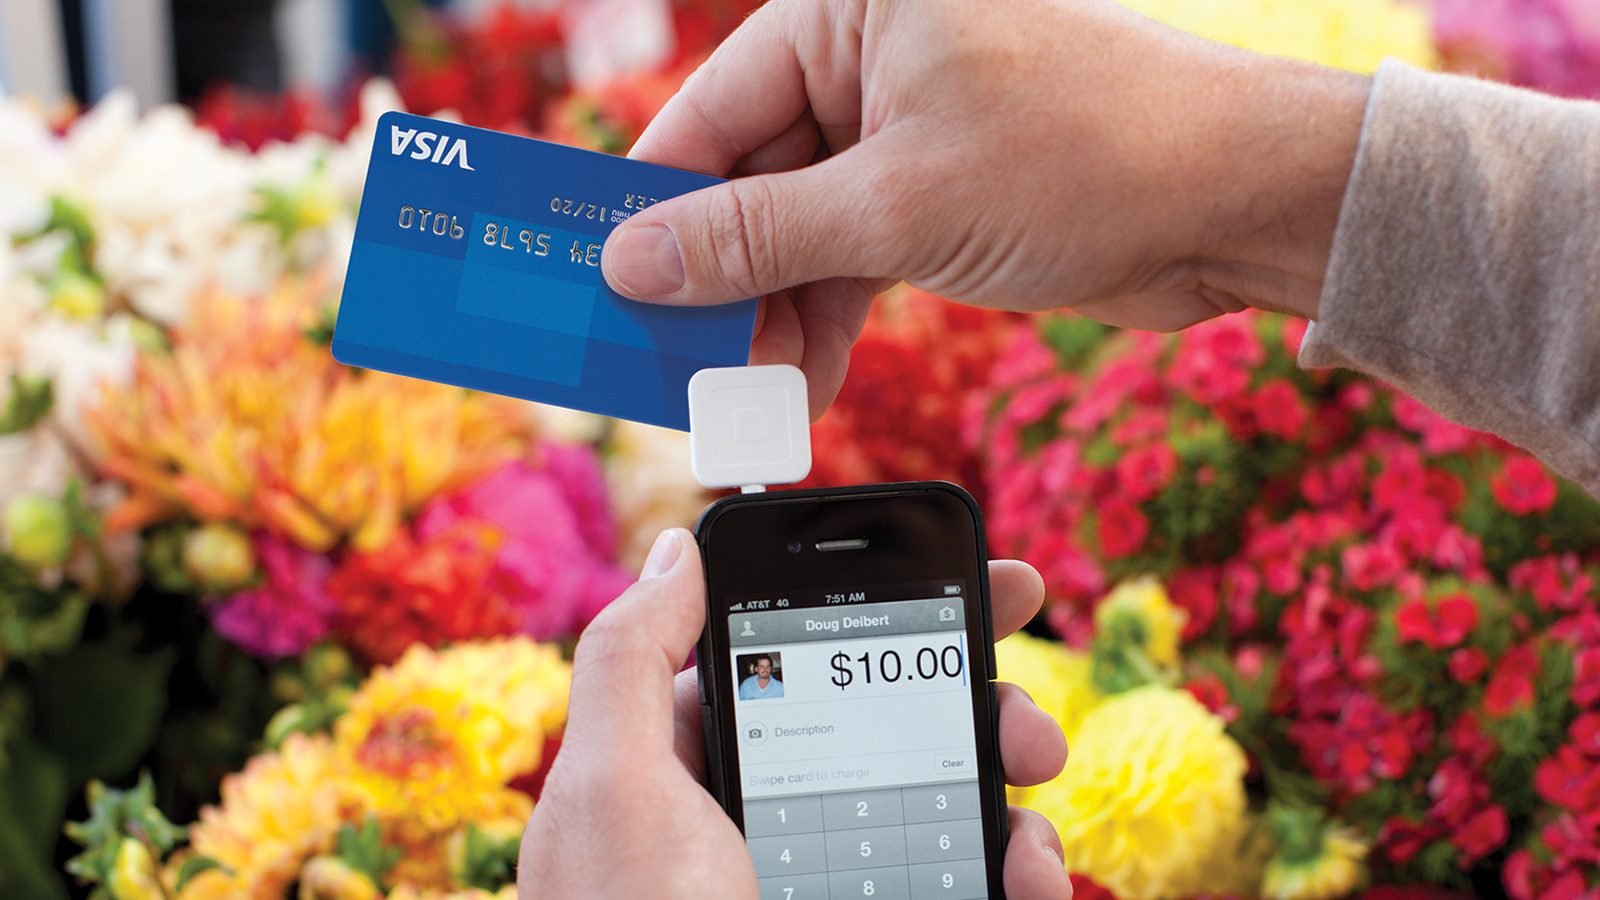 Florist completing a transaction with a Visa card